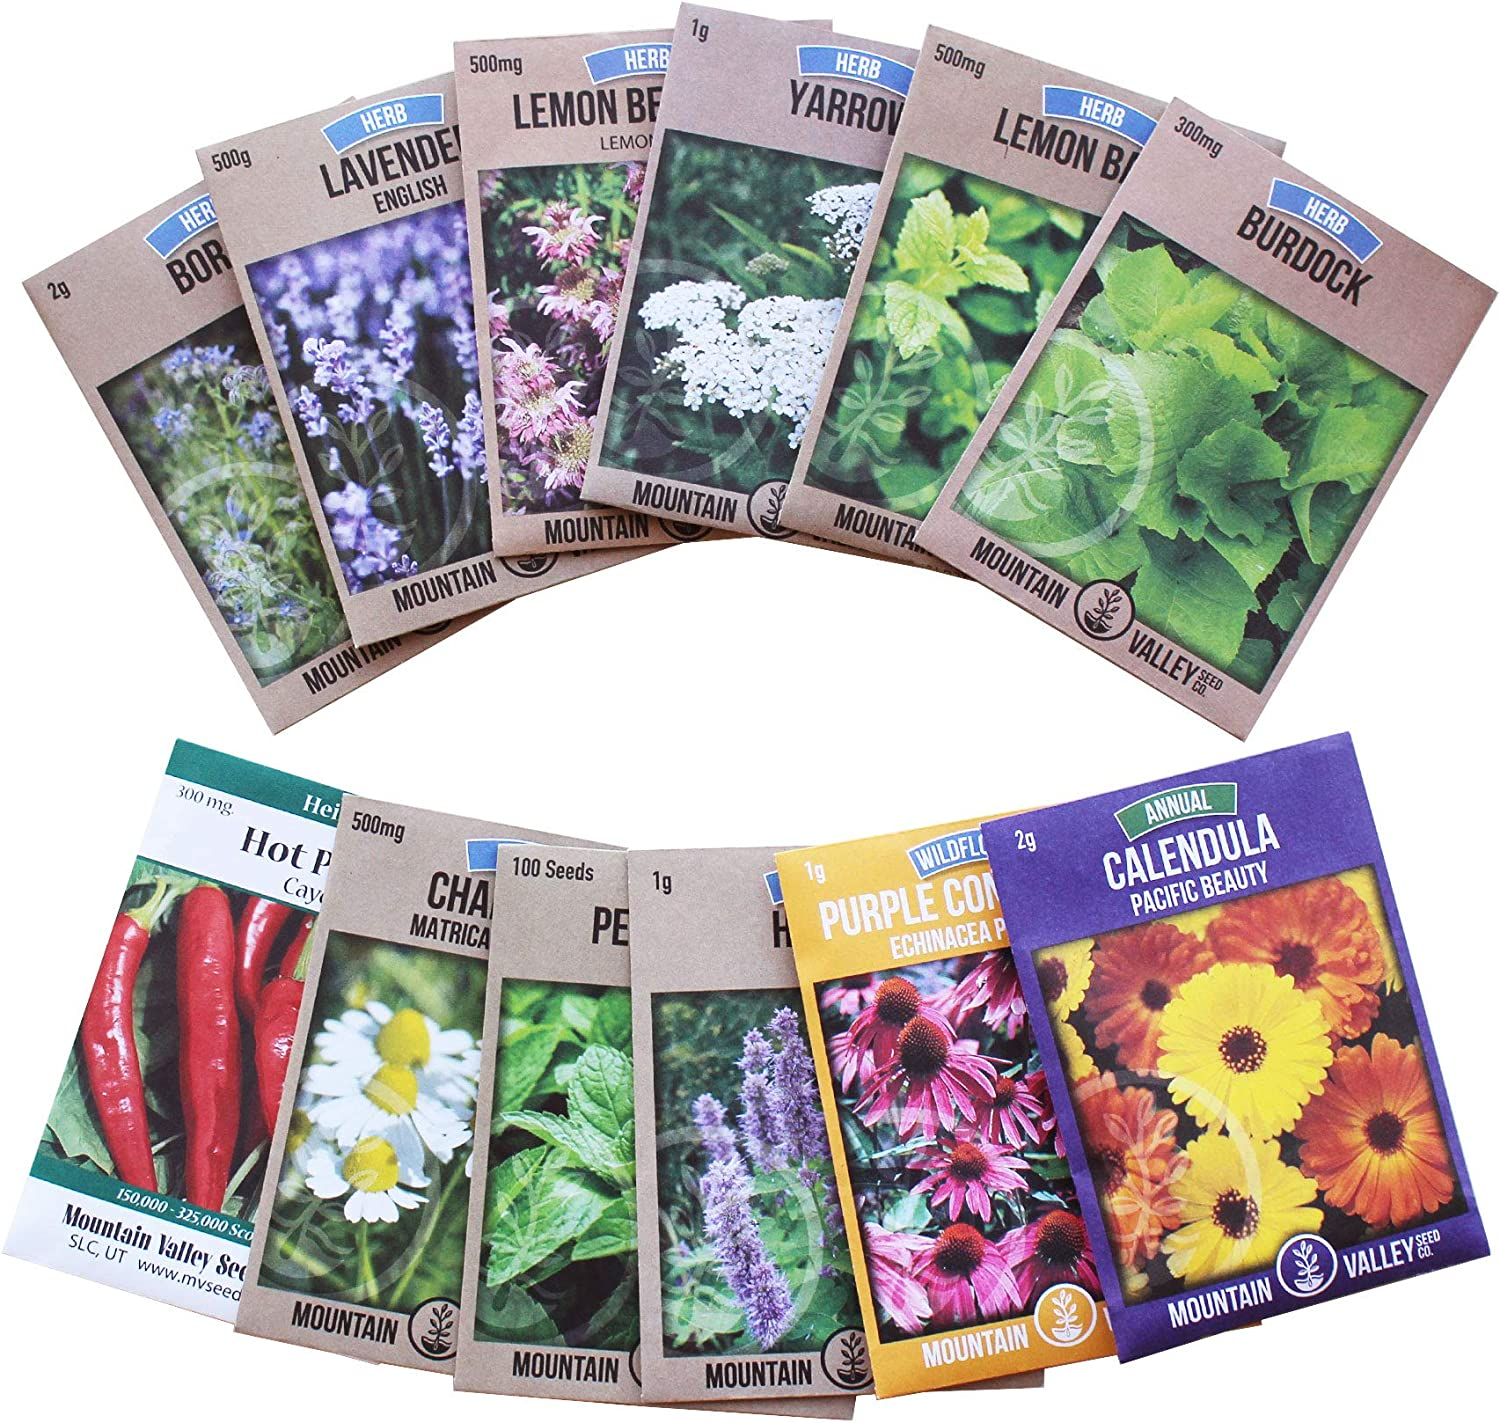 Living Whole Foods Medicinal Herb Seed Assortment - Non-GMO Healing Herb Seeds - Burdock, Cayenne, Yarrow, Chamomile, Hyssop, Echinacea, More